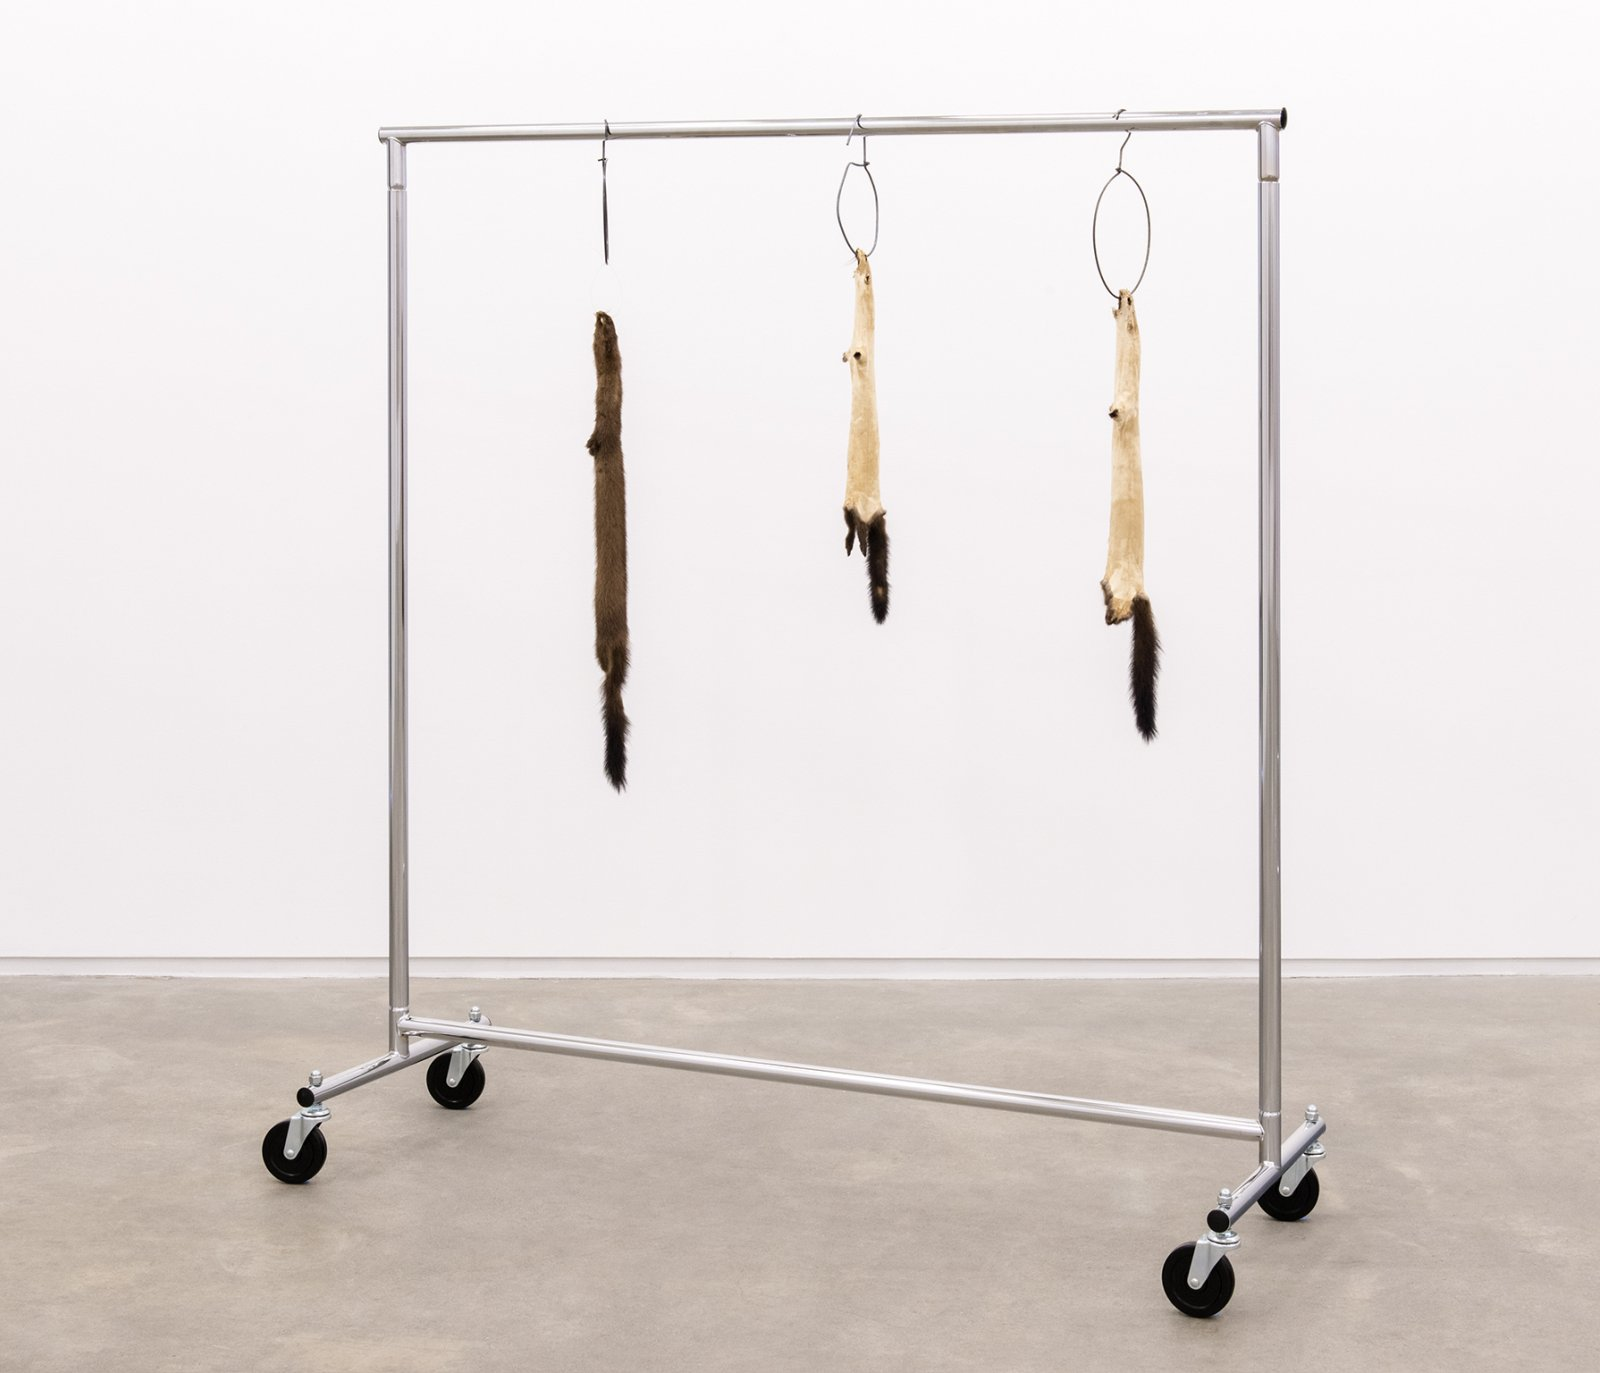 Duane Linklater, Little ghosts, 2014, mink furs, garment rack, plastic cable tie, hangers, 66 x 60 x 20 in. (168 x 151 x 52 cm) by Duane Linklater